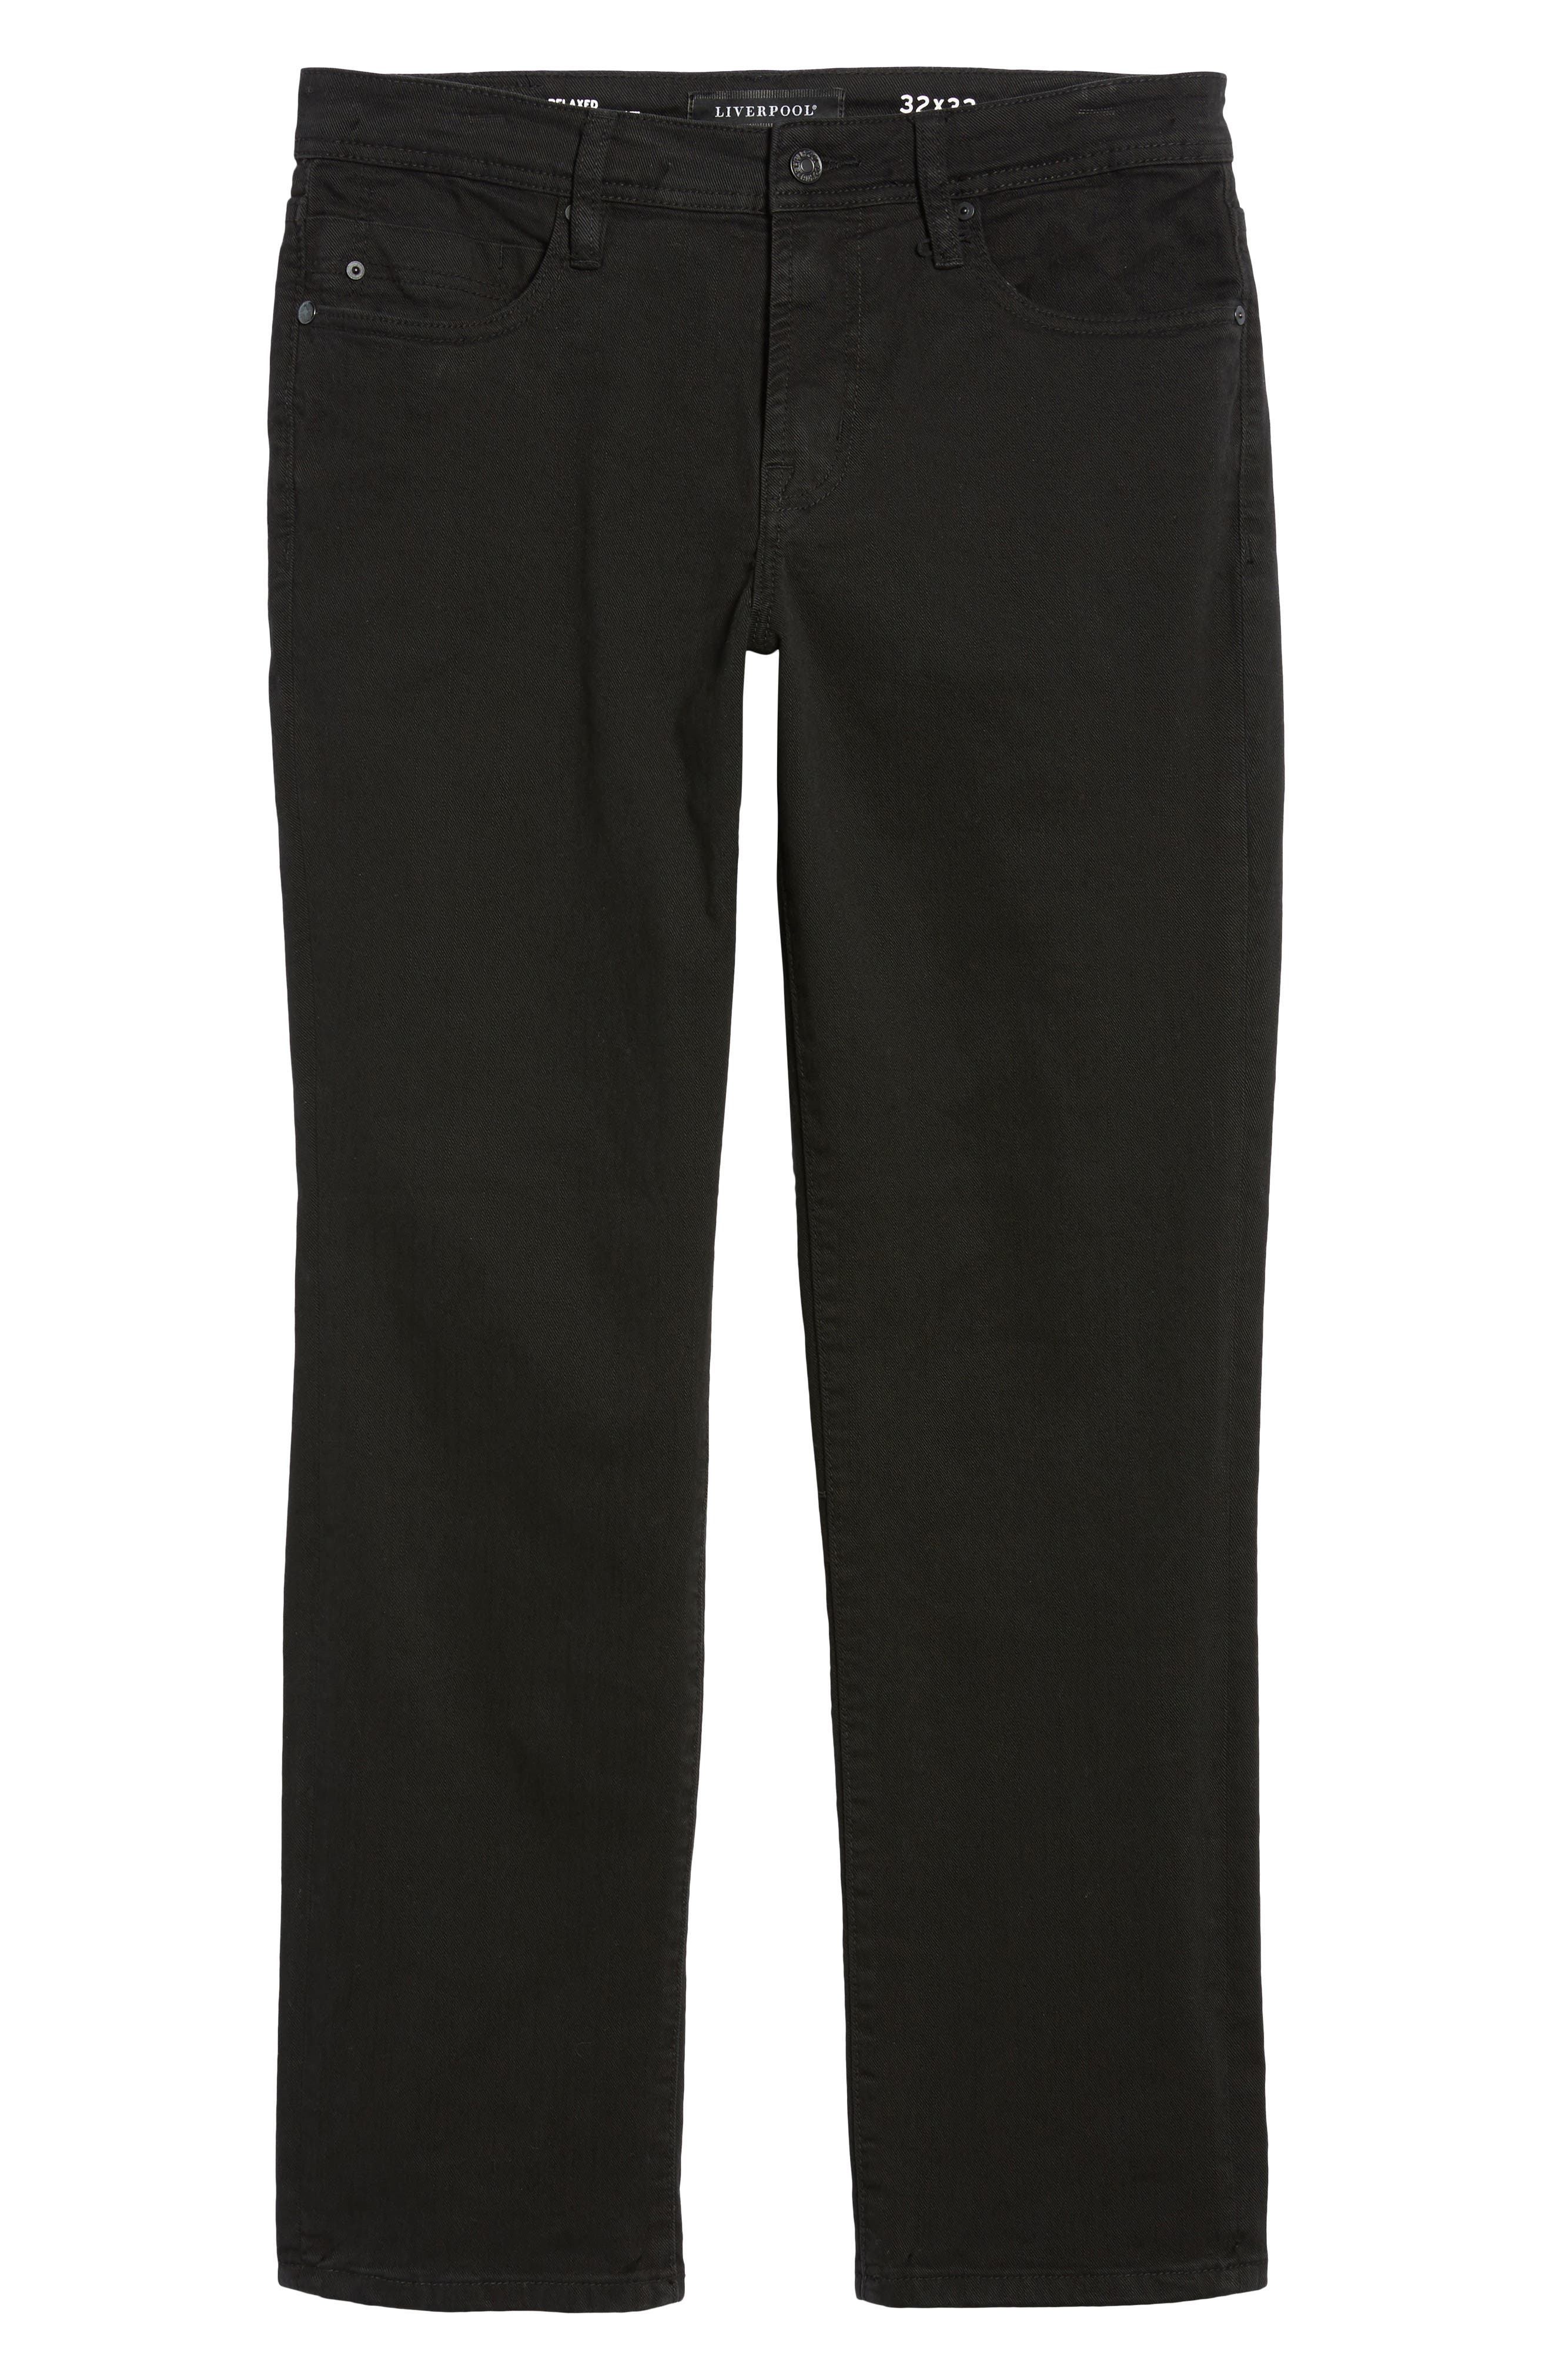 Jeans Co. Regent Relaxed Fit Jeans,                             Alternate thumbnail 6, color,                             BLACK RINSE